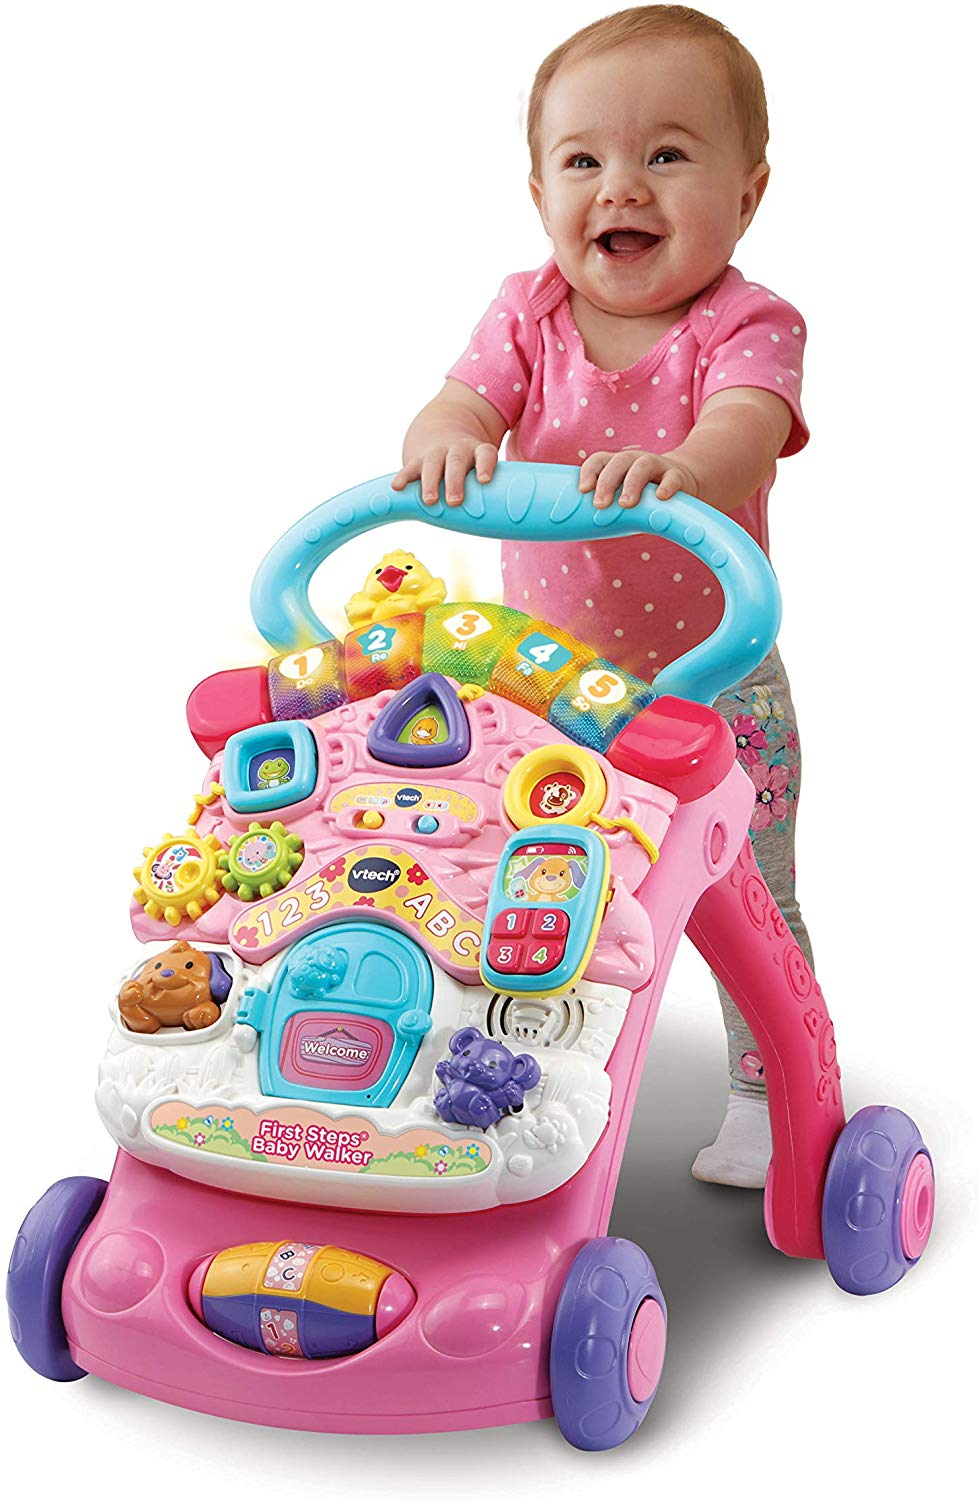 Vtech First Steps Baby Walker, Pink is Up to 52% off